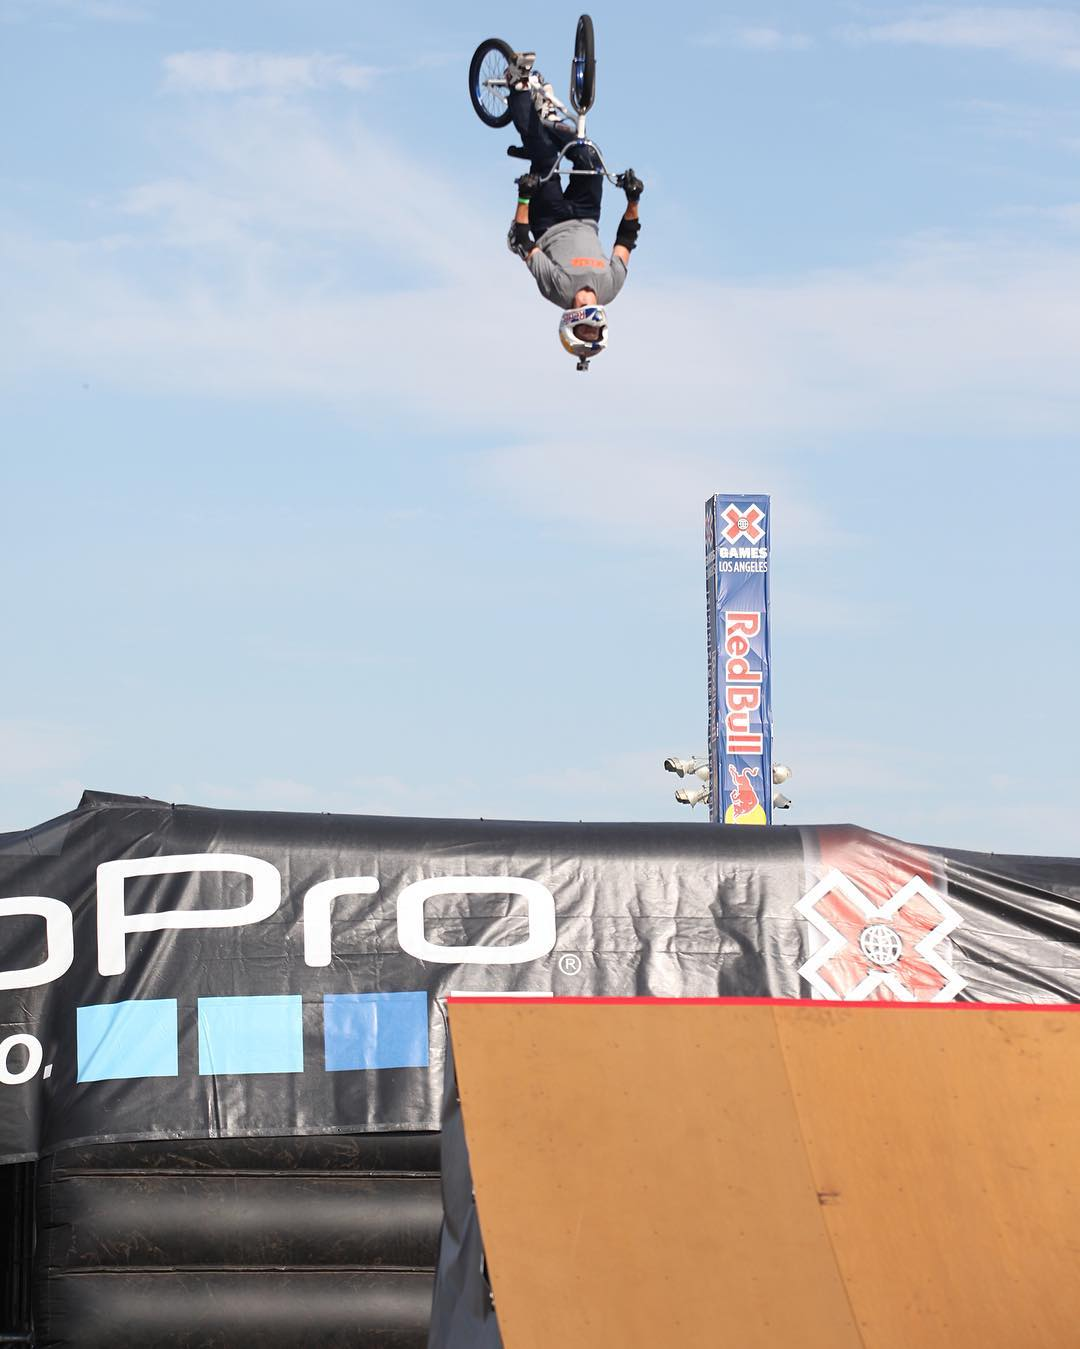 44-year-old @KRobBMX will come out of retirement to attempt a world record BMX backflip Aug. 13 at Kennedy Plaza in Providence, R.I.  The event will air live on ESPN2 at 11:30 pm ET!